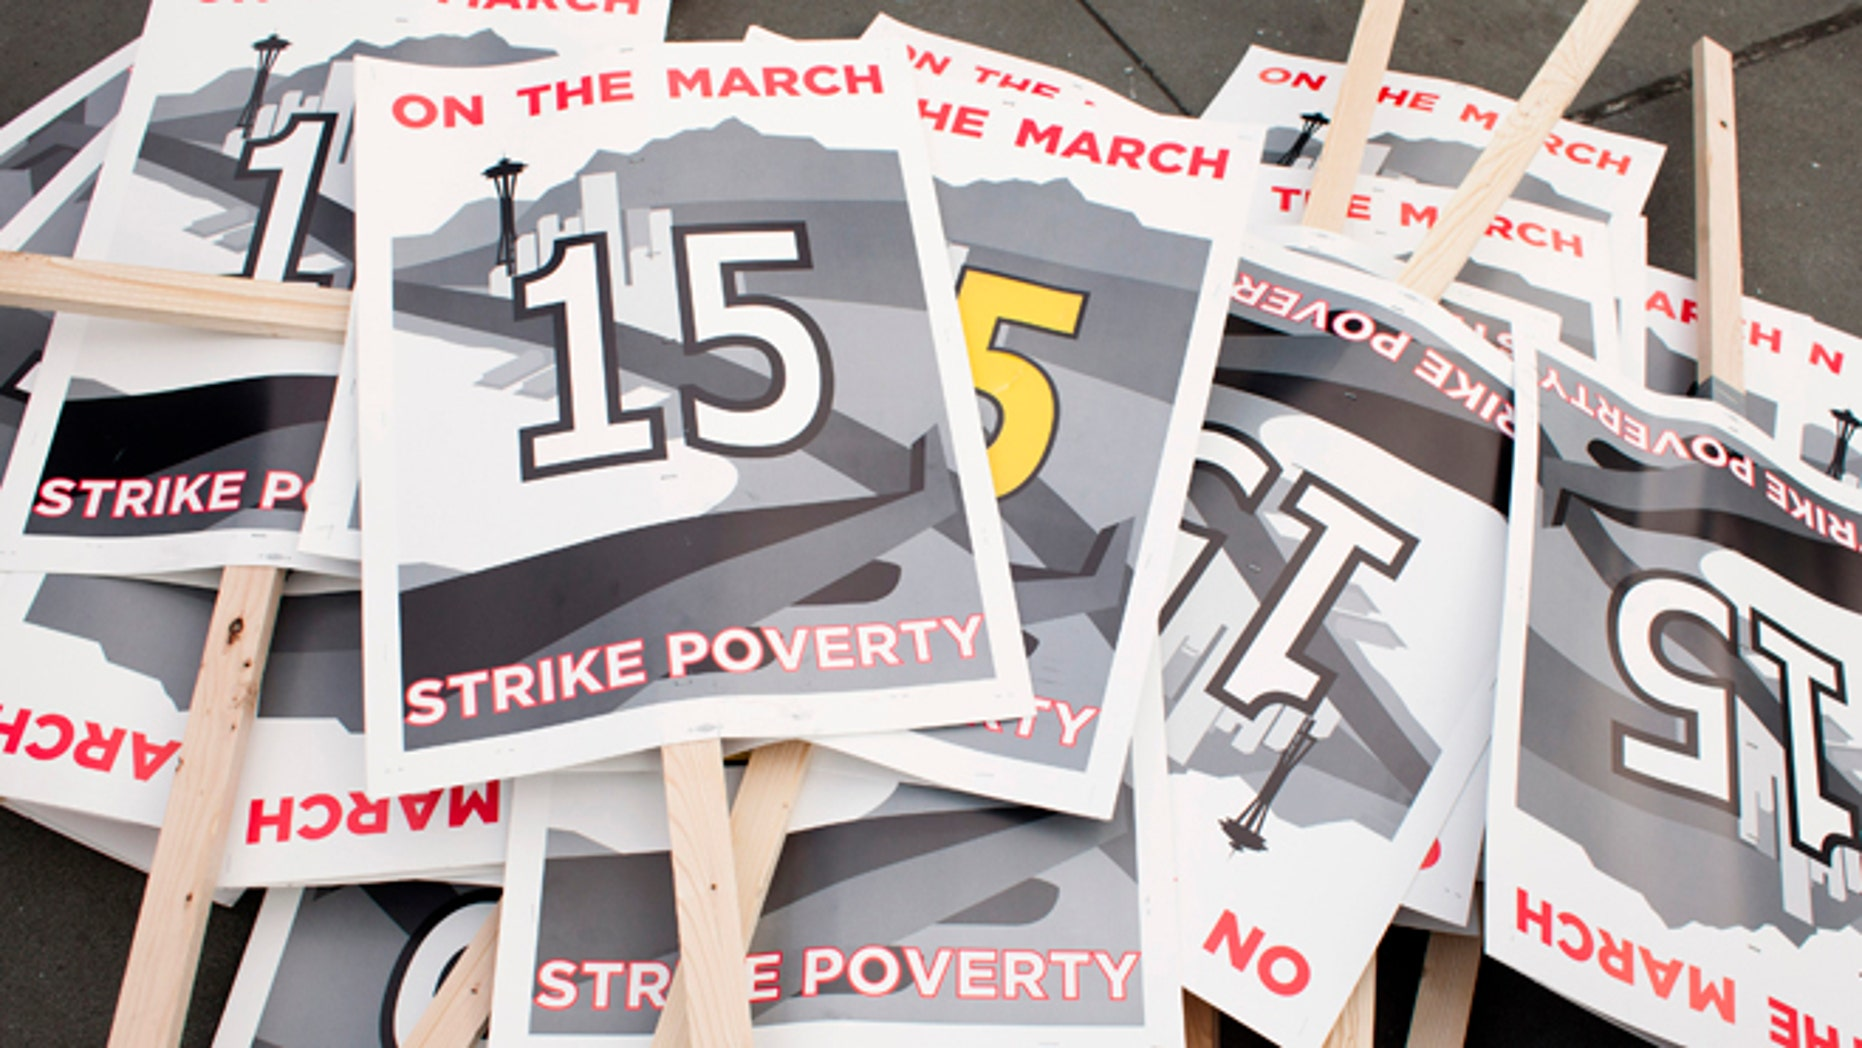 Dec. 5, 2013: Protest signs are pictured in SeaTac, Wash., before a march in support of raising the minimum wage to $15 an hour.